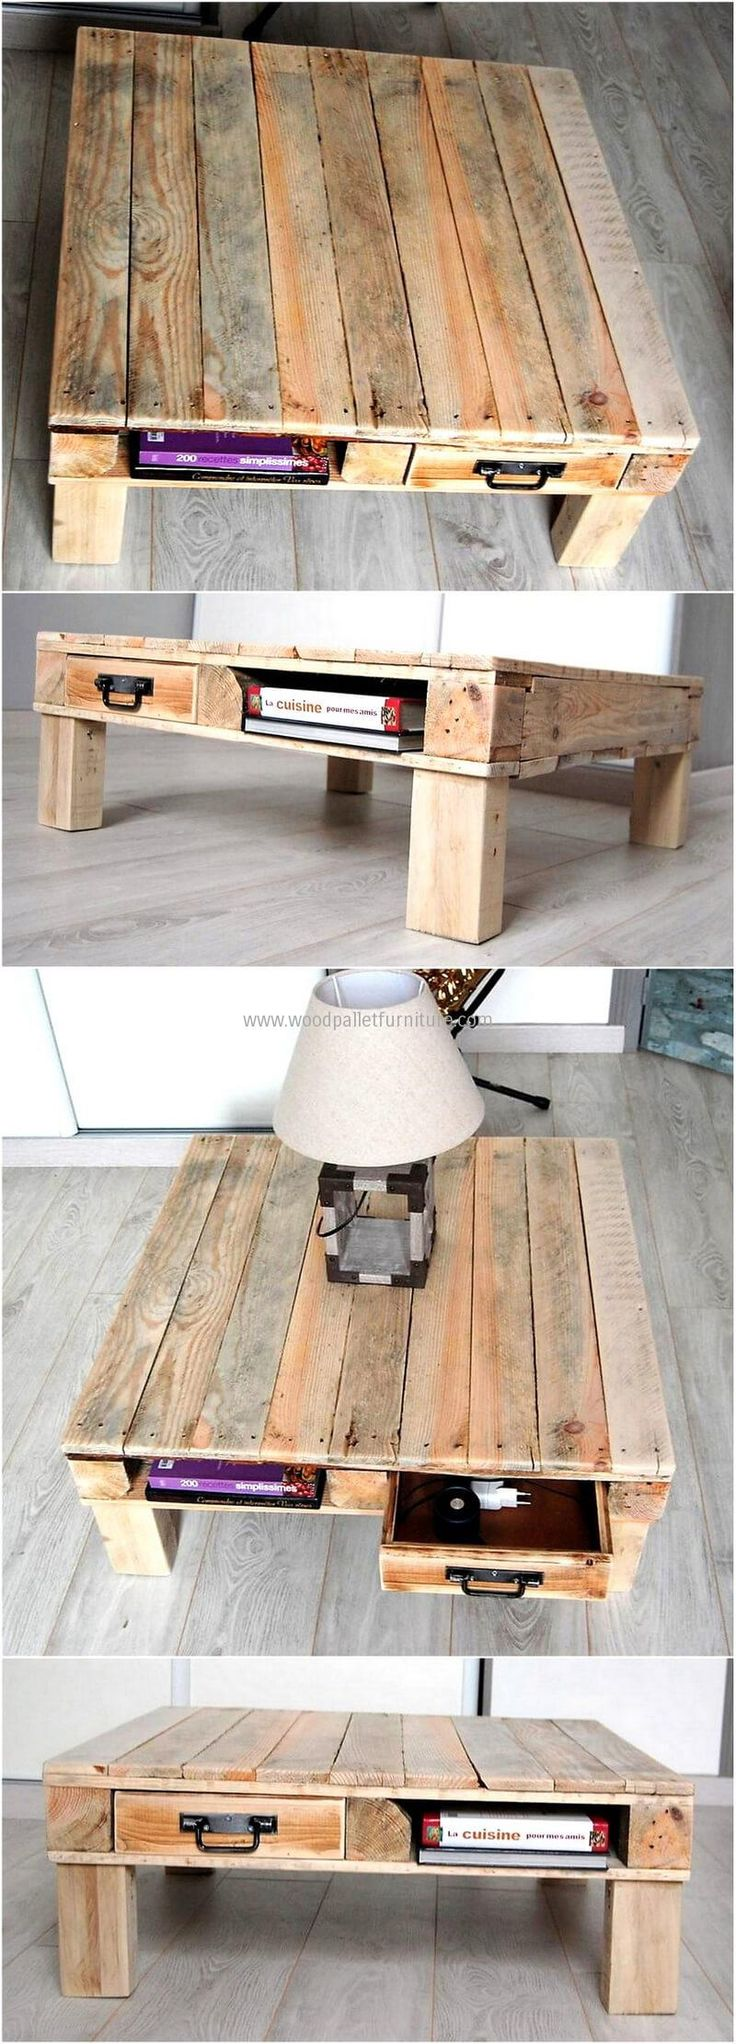 There are people who love to read books and they need a specific place where they can set them and also sit there to enjoy reading. So, we have added this idea of shipping pallet table creation with the space to place the books as well as sitting at it doesn't require a chair because the size is small.